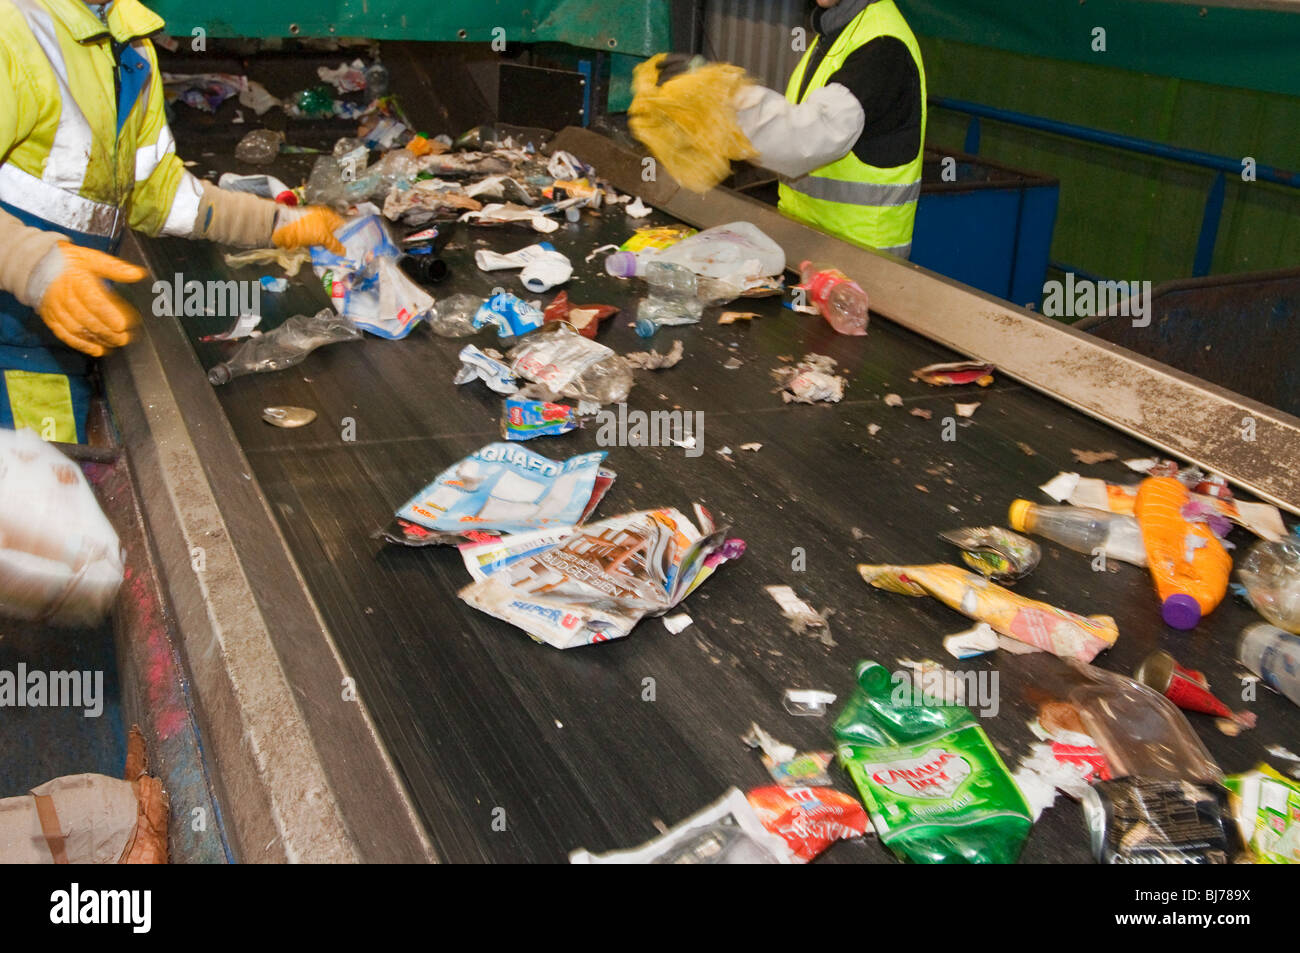 Rubbish on a conveyor belt for sorting at a recycling center - Stock Image